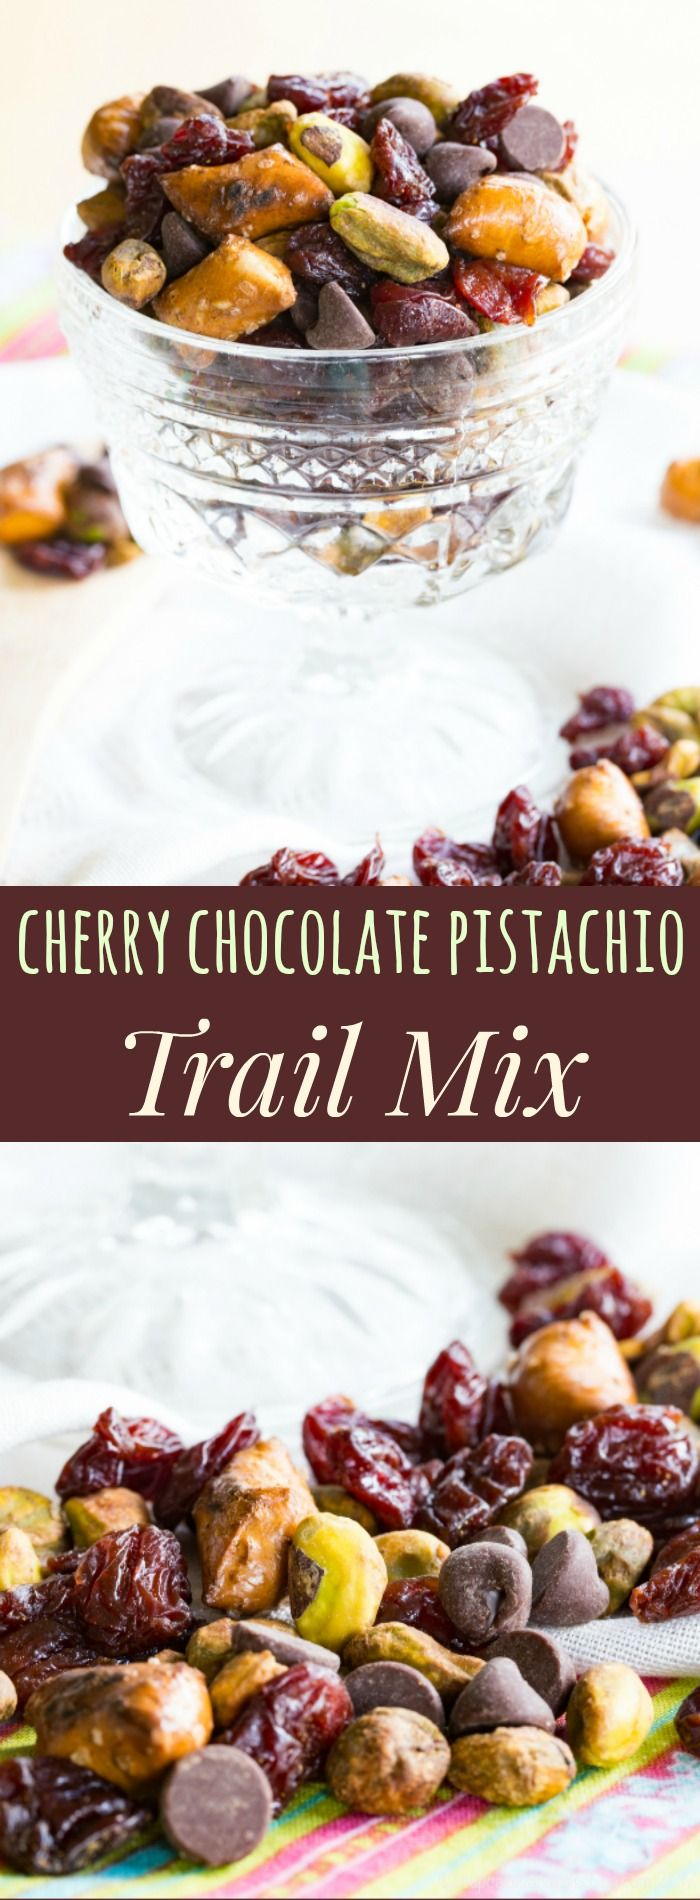 Cherry Chocolate Pistachio Trail Mix - a sweet and salty snack mix that will satisfy you with protein and fiber when afternoon hunger strikes. In the office or outside having fun, you'll love this combination of dried cherries, chocolate chips, pretzels,